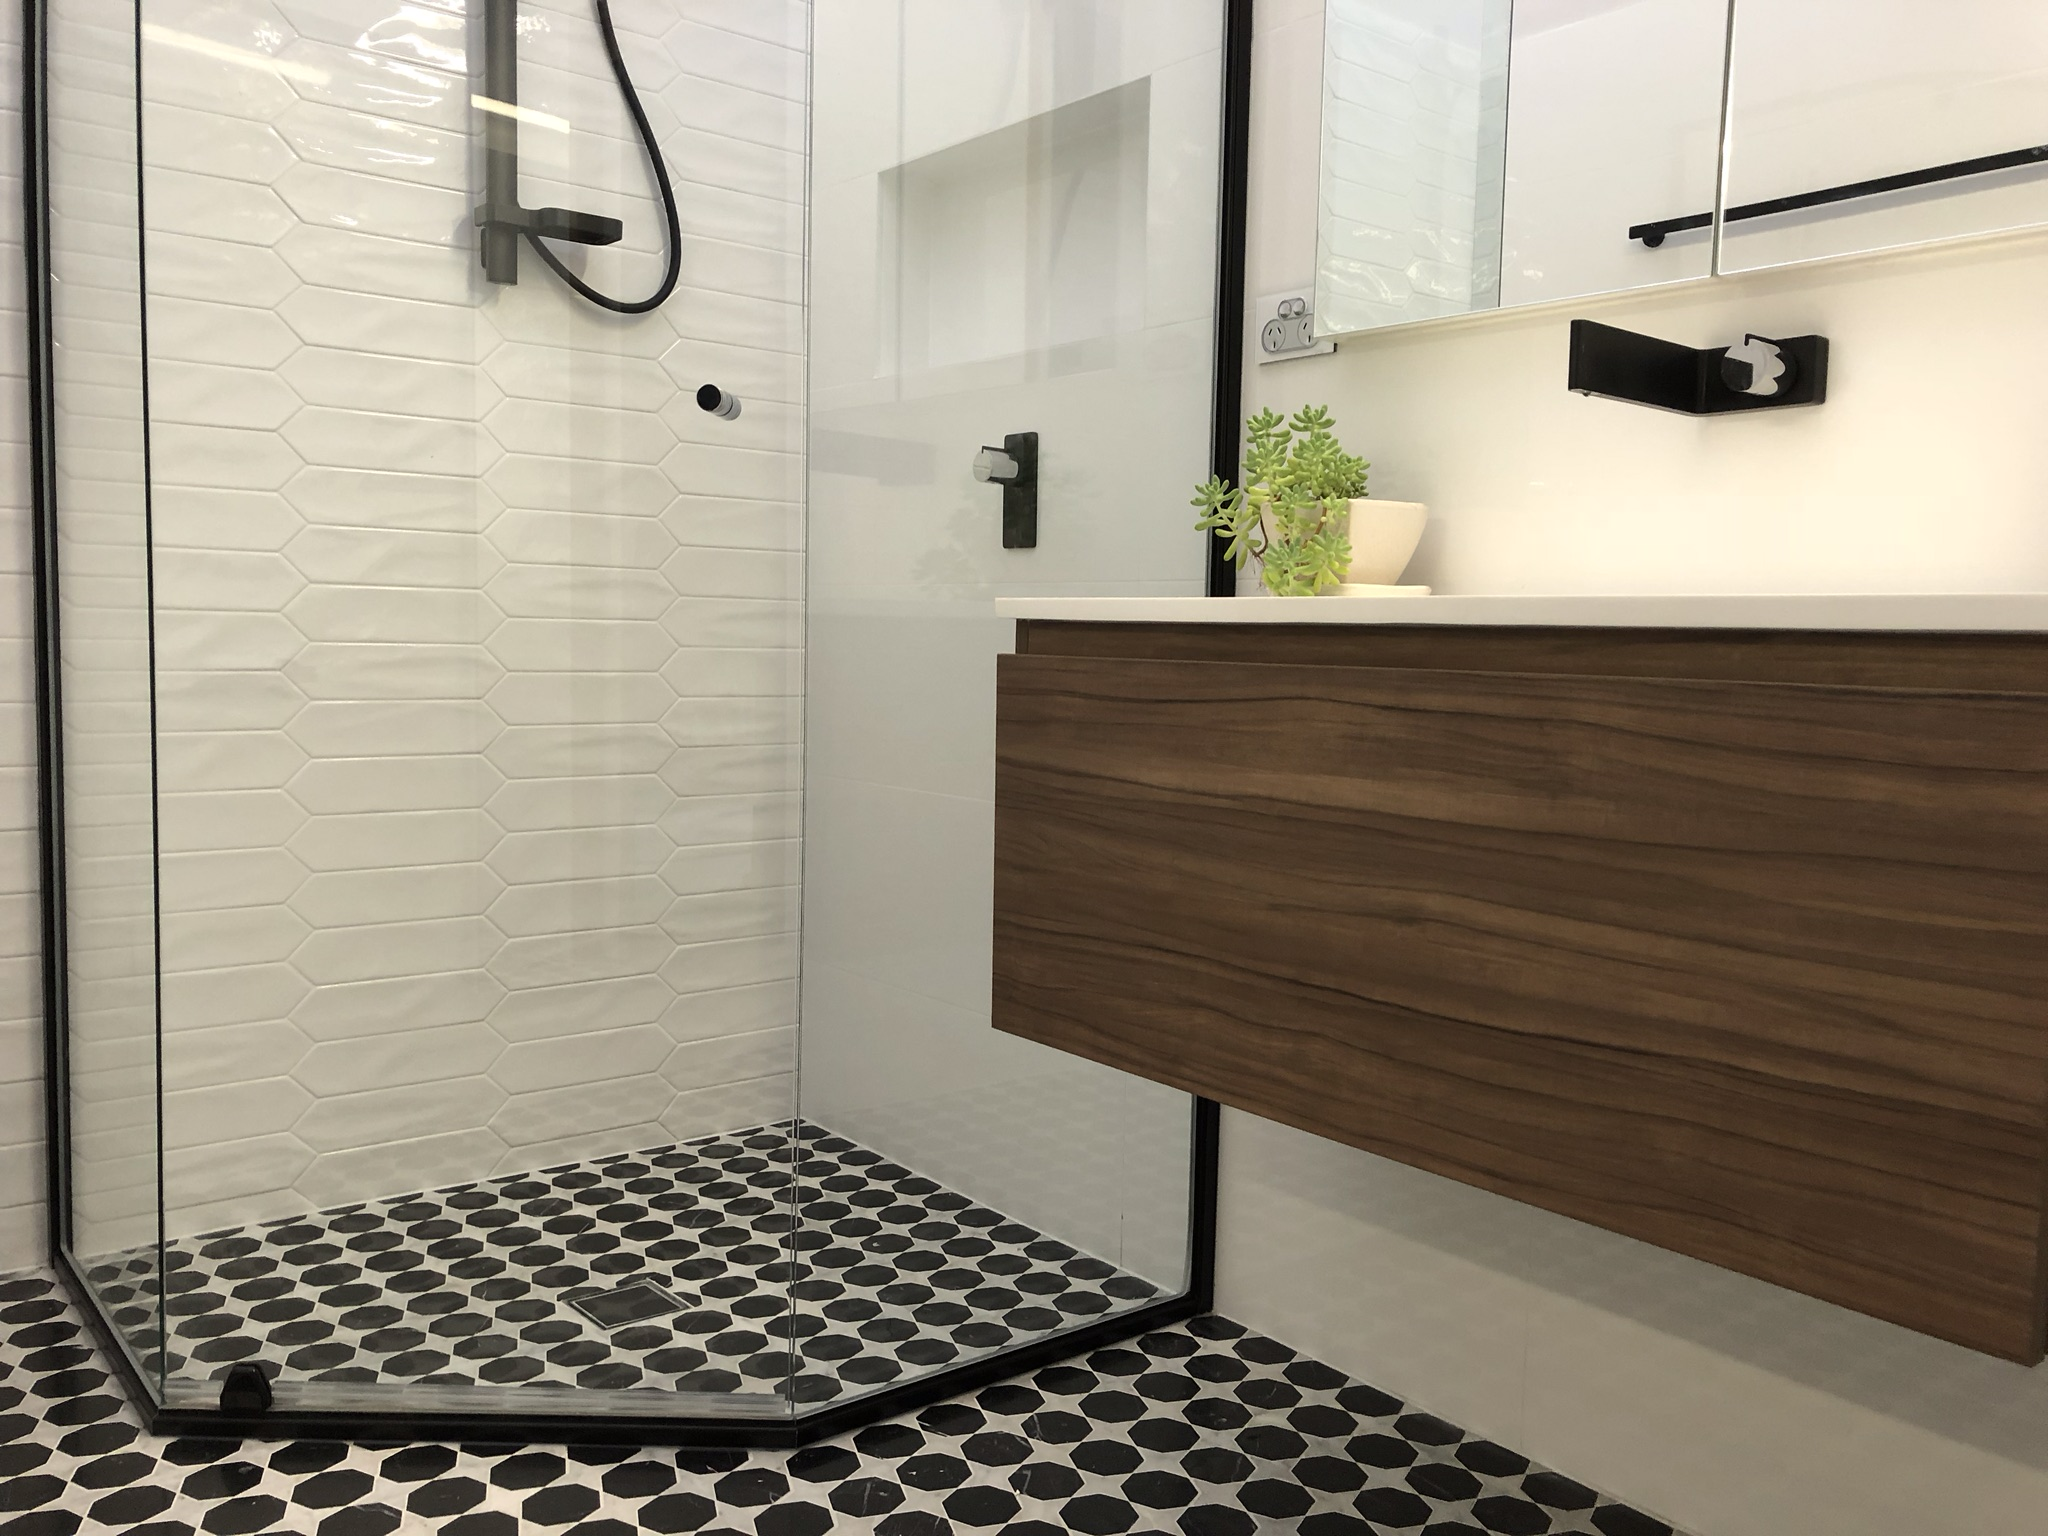 Recessed Shaving Cabinets Be Smart With Your Bathroom Mirror When Renovating